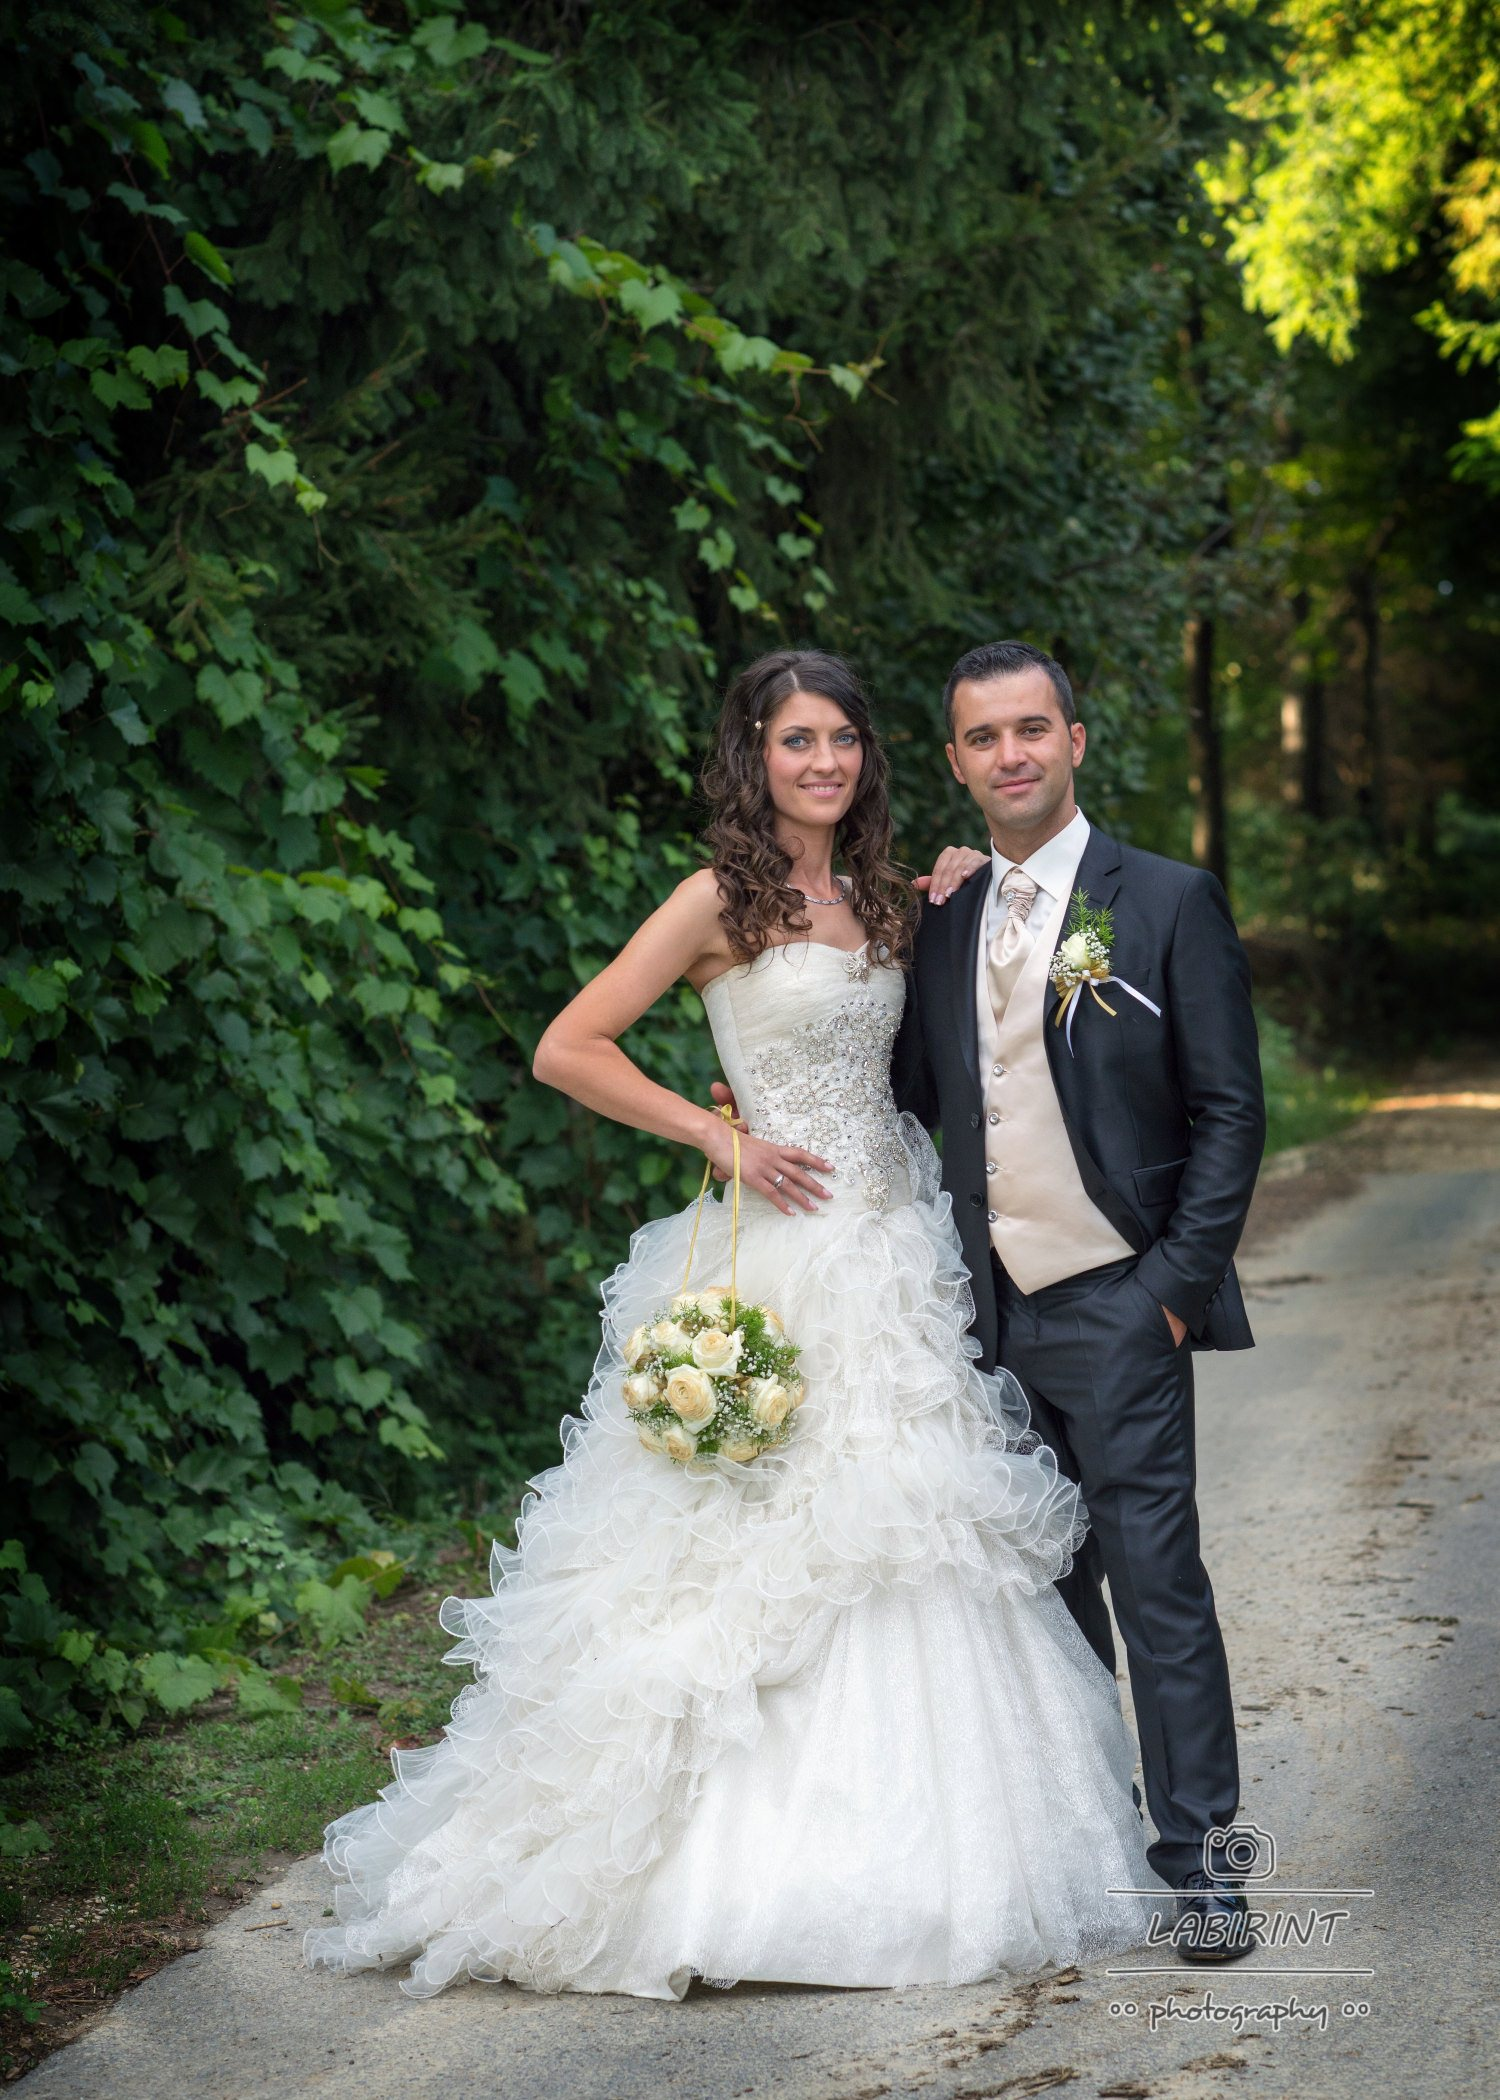 Wedding of Vera and Filip